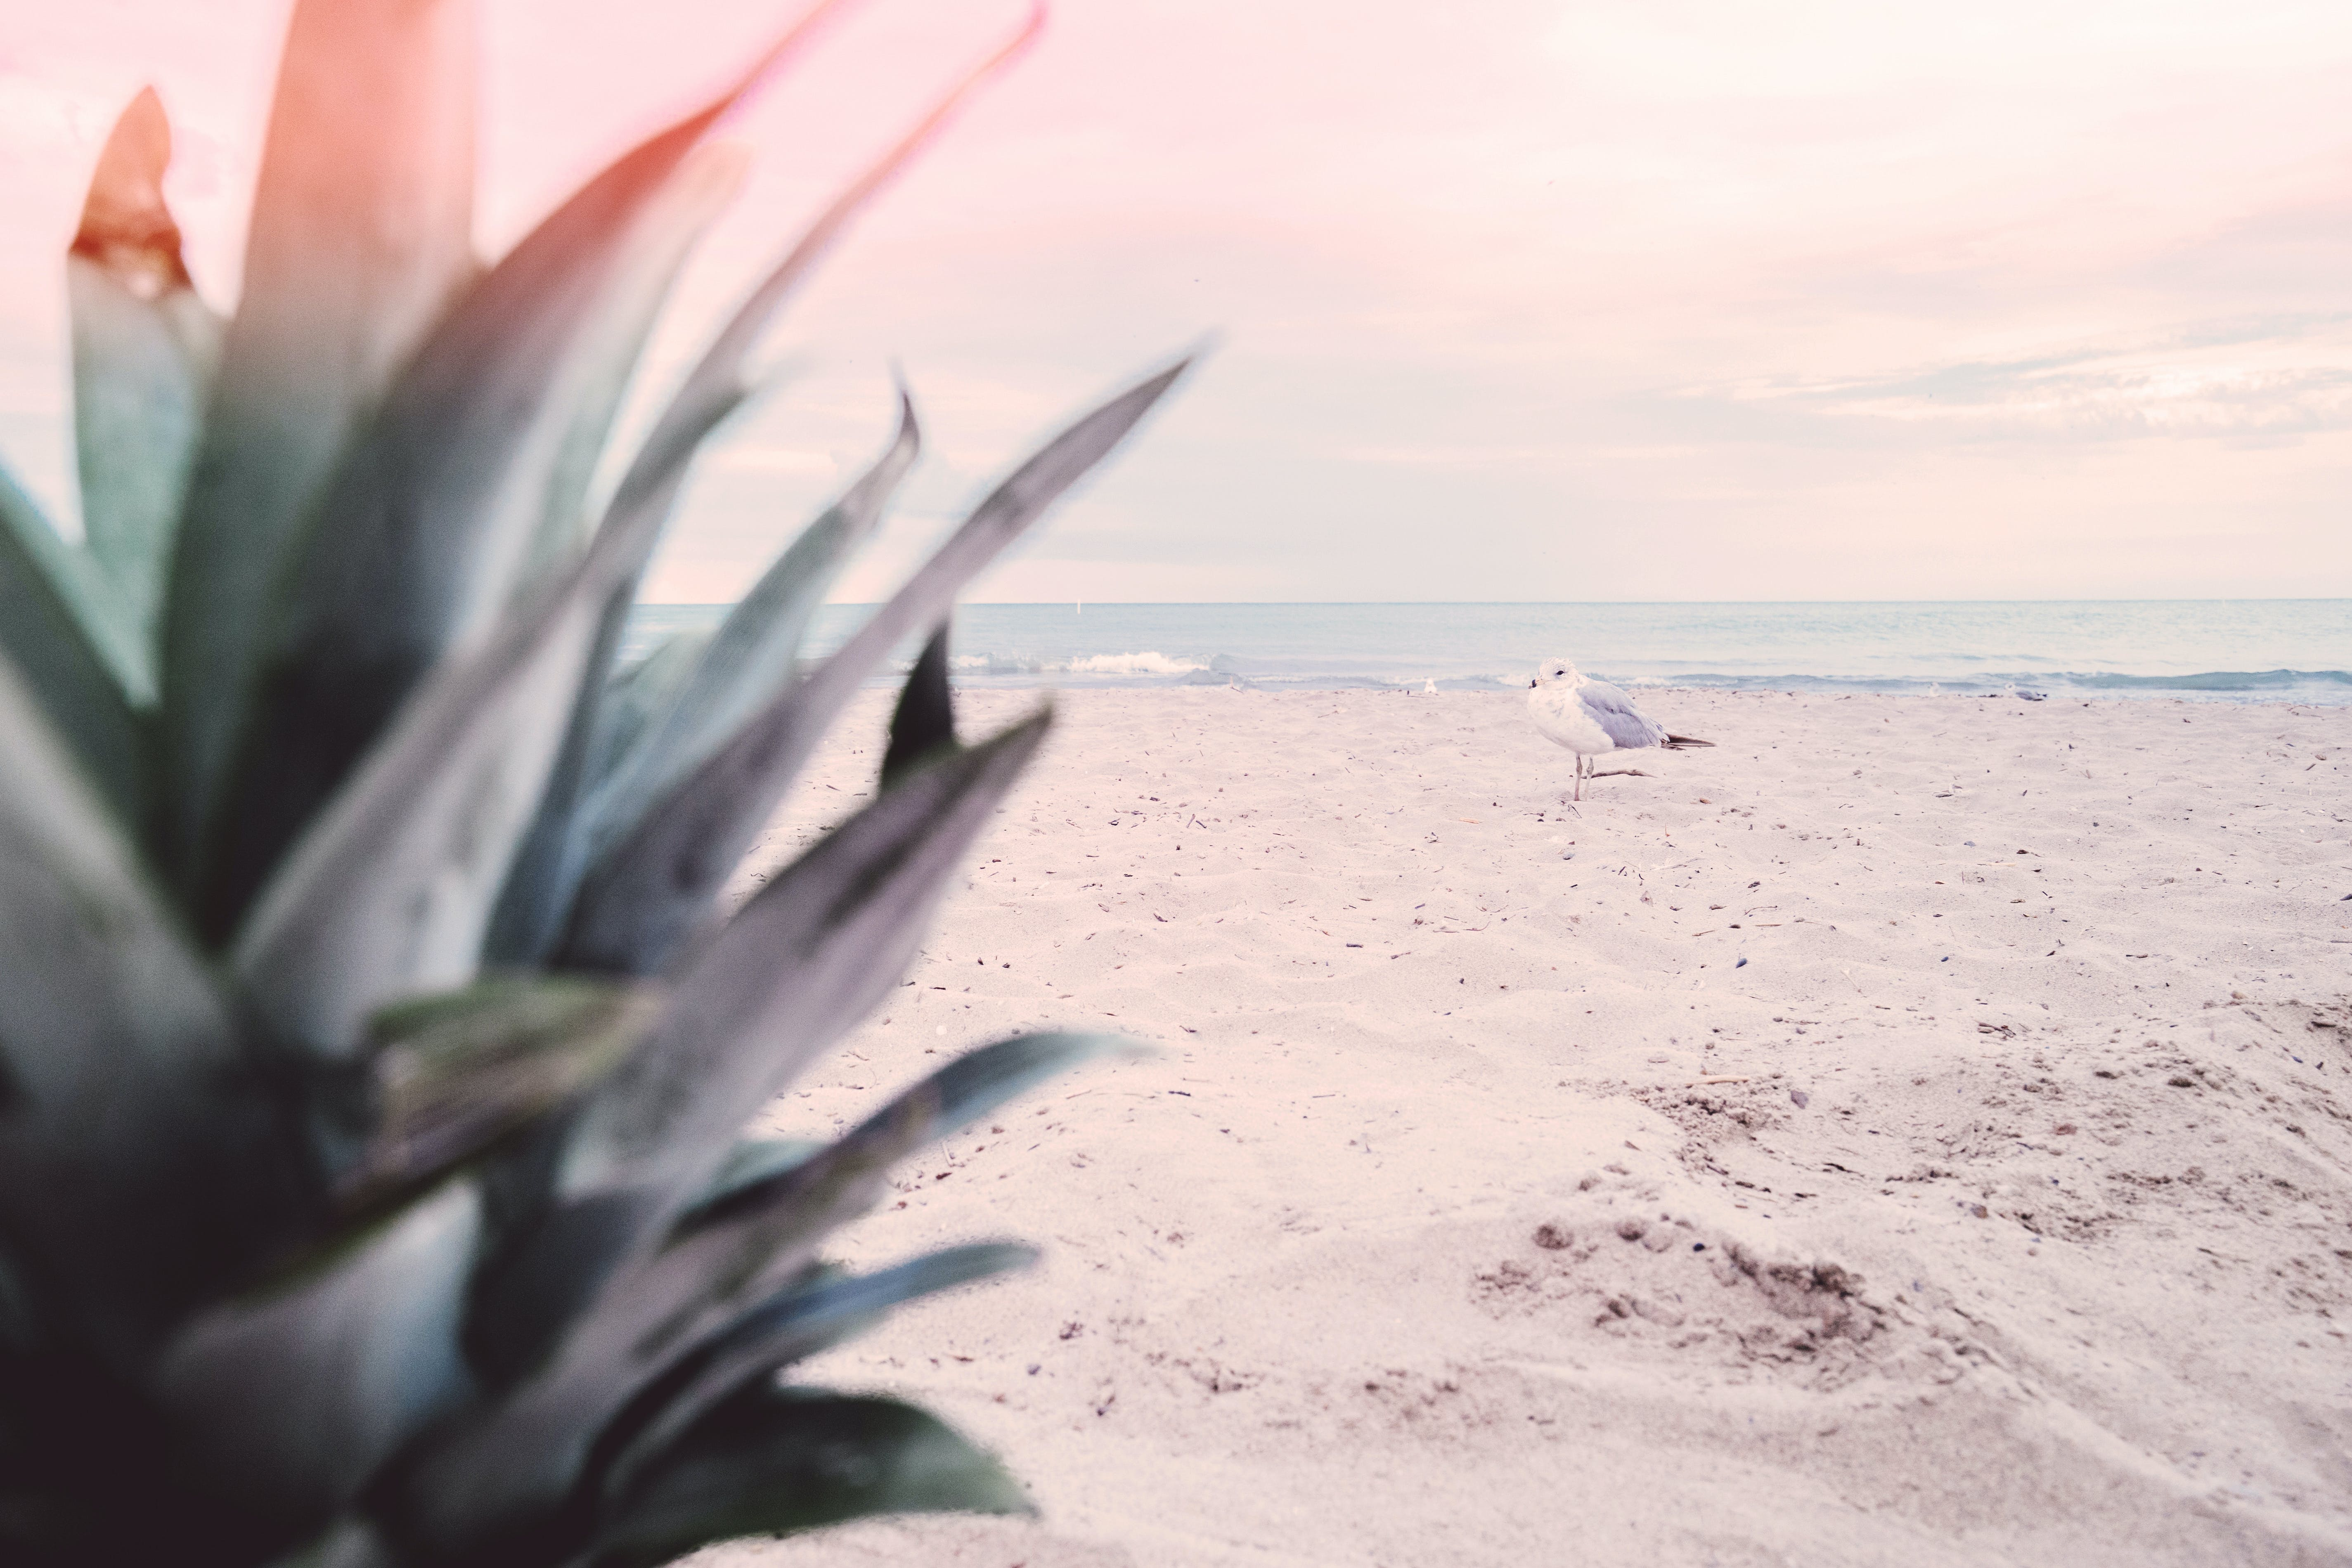 Free stock photo of sea, bird, beach, sand